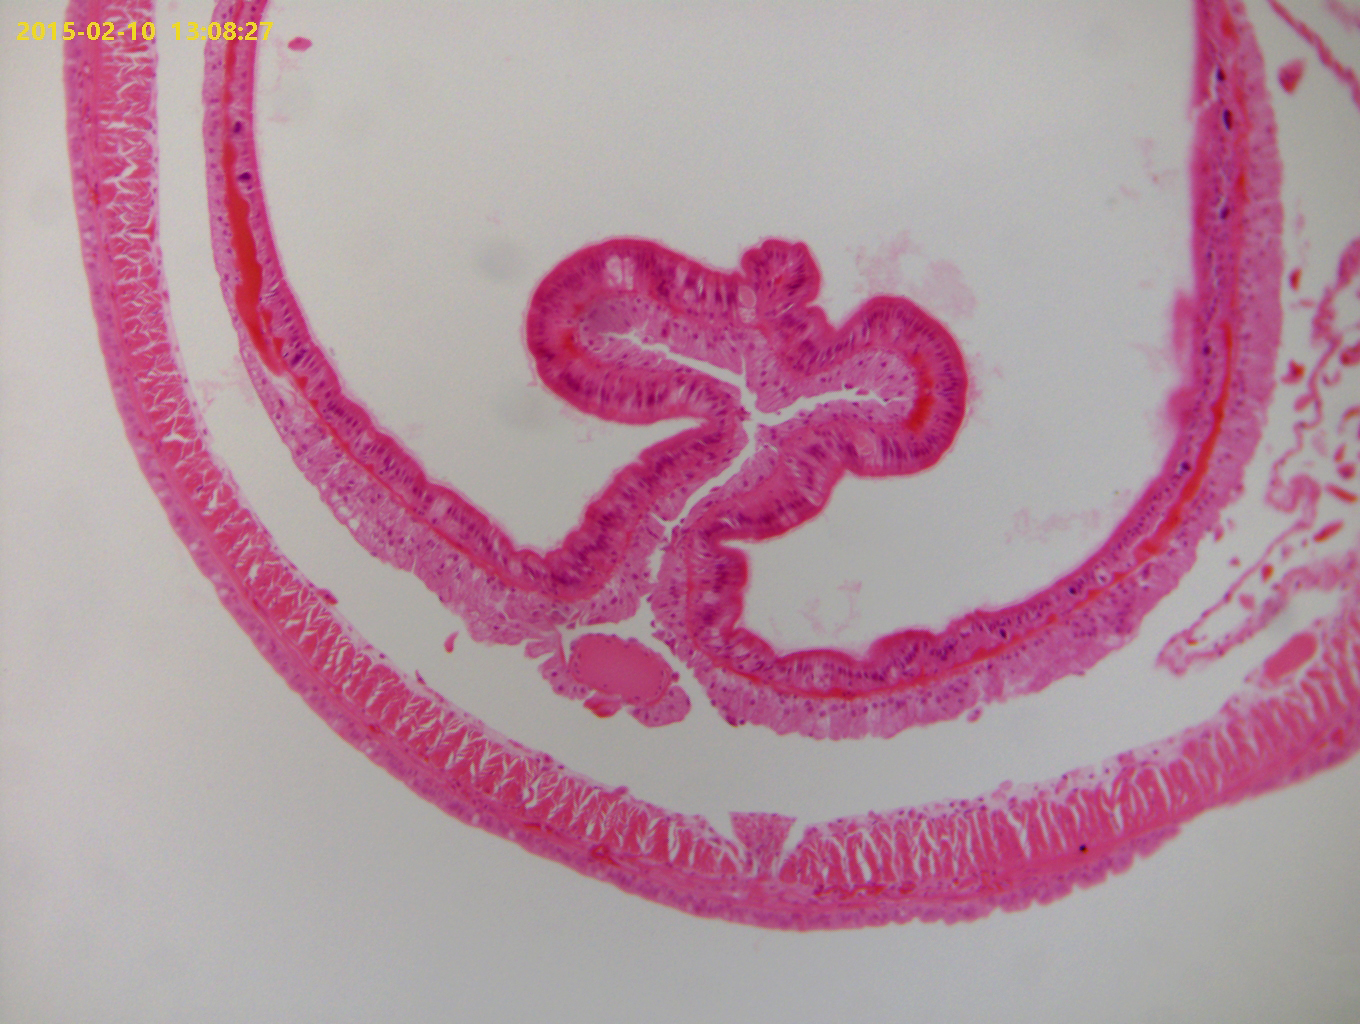 Earthworm (Cross Section)